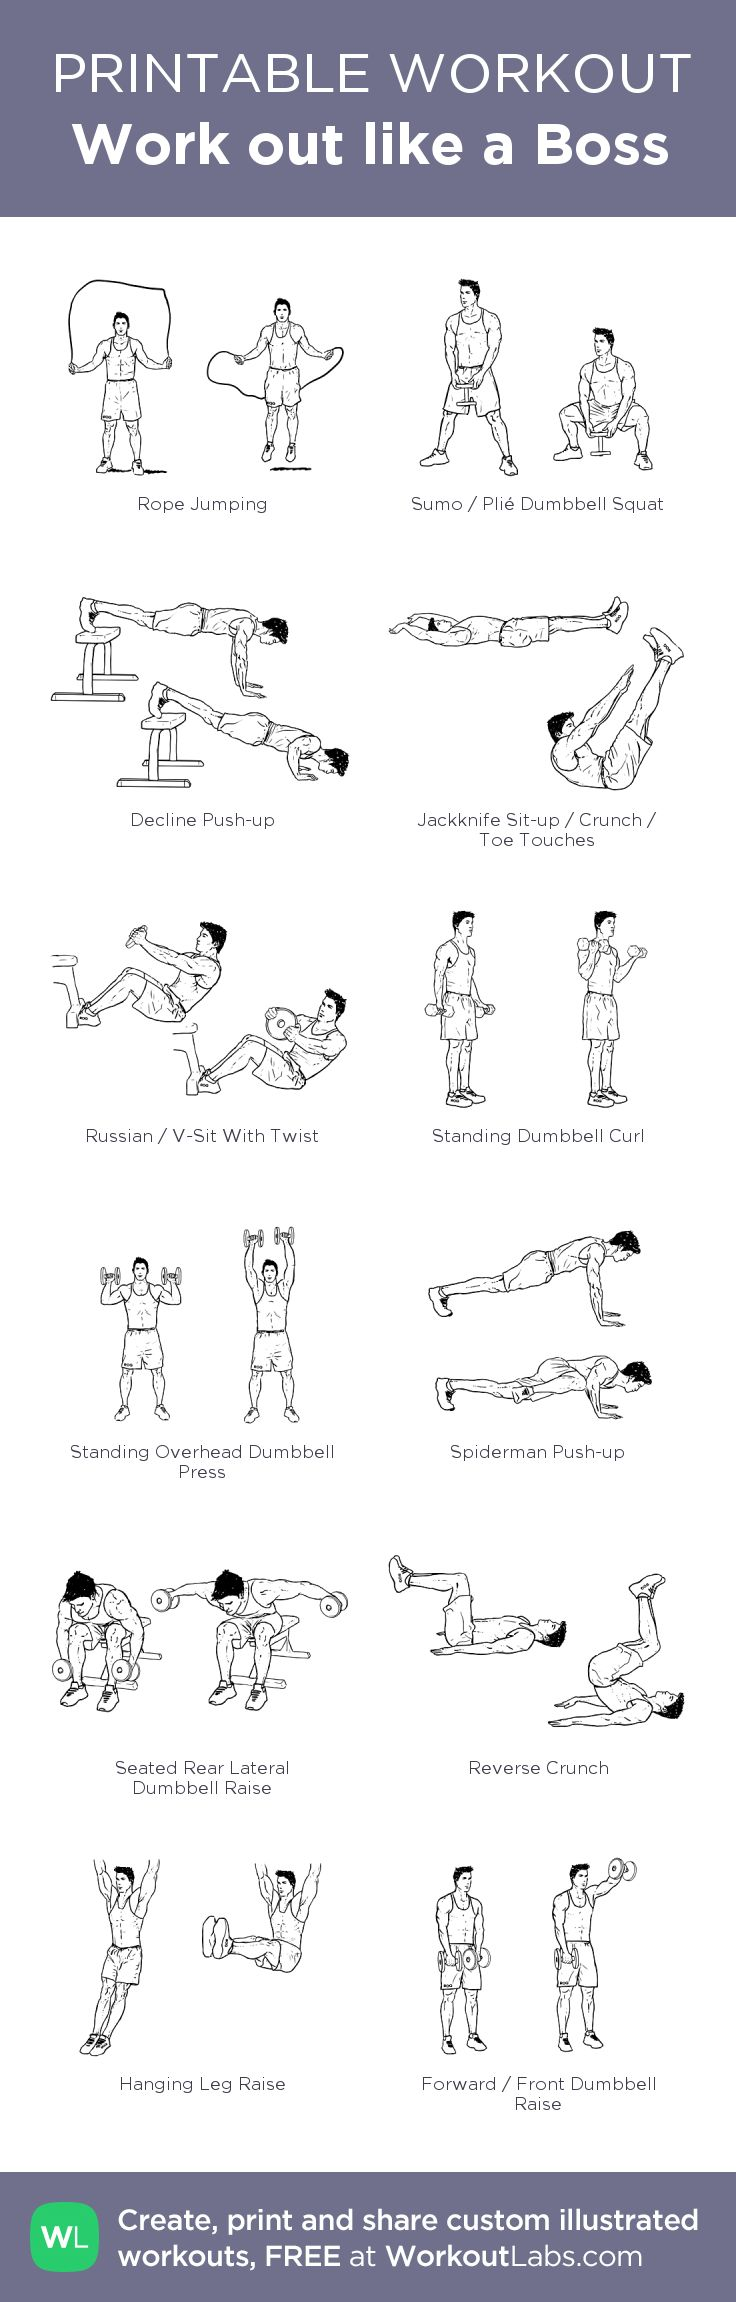 Work out like a Boss – my custom workout created at WorkoutLabs.com • Click through to download as printable PDF! #customworkout